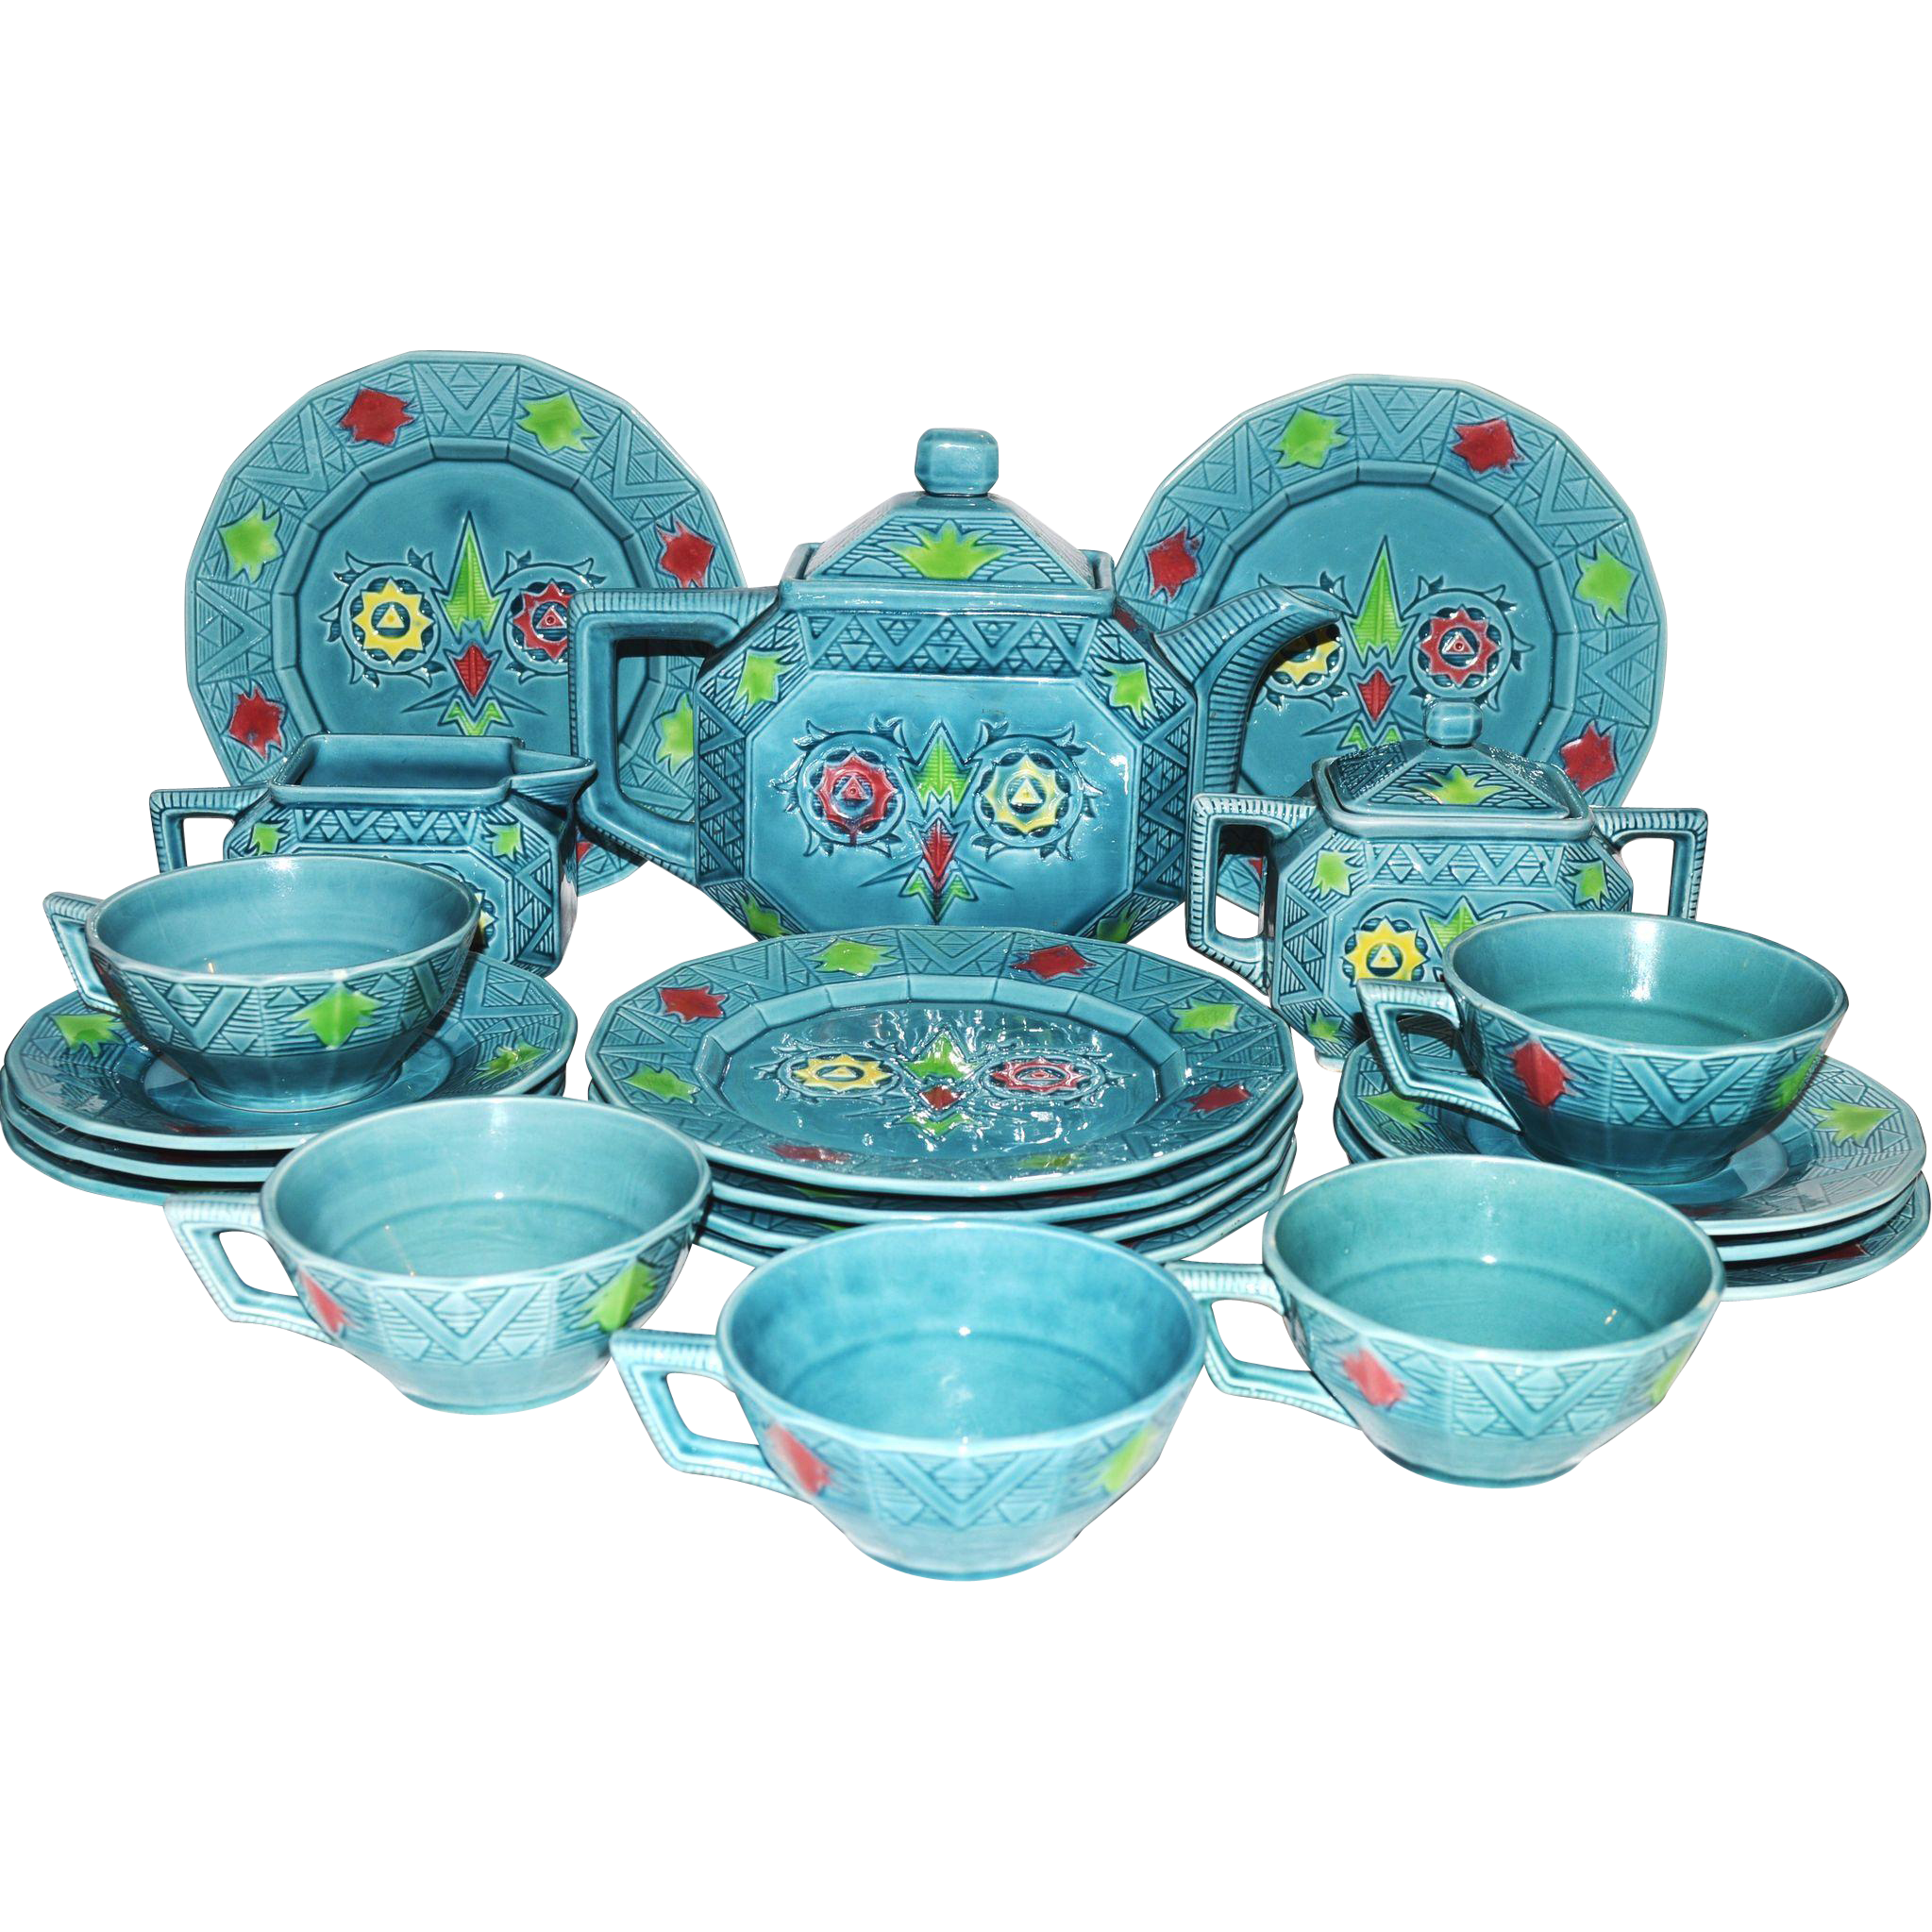 RARE  Majolica Tea & Dessert Set ~ Art Deco 22 Piece~ Turquoise with Colorful Geometric Designs ~ Georg Schmider – Zell Germany 1907-1928